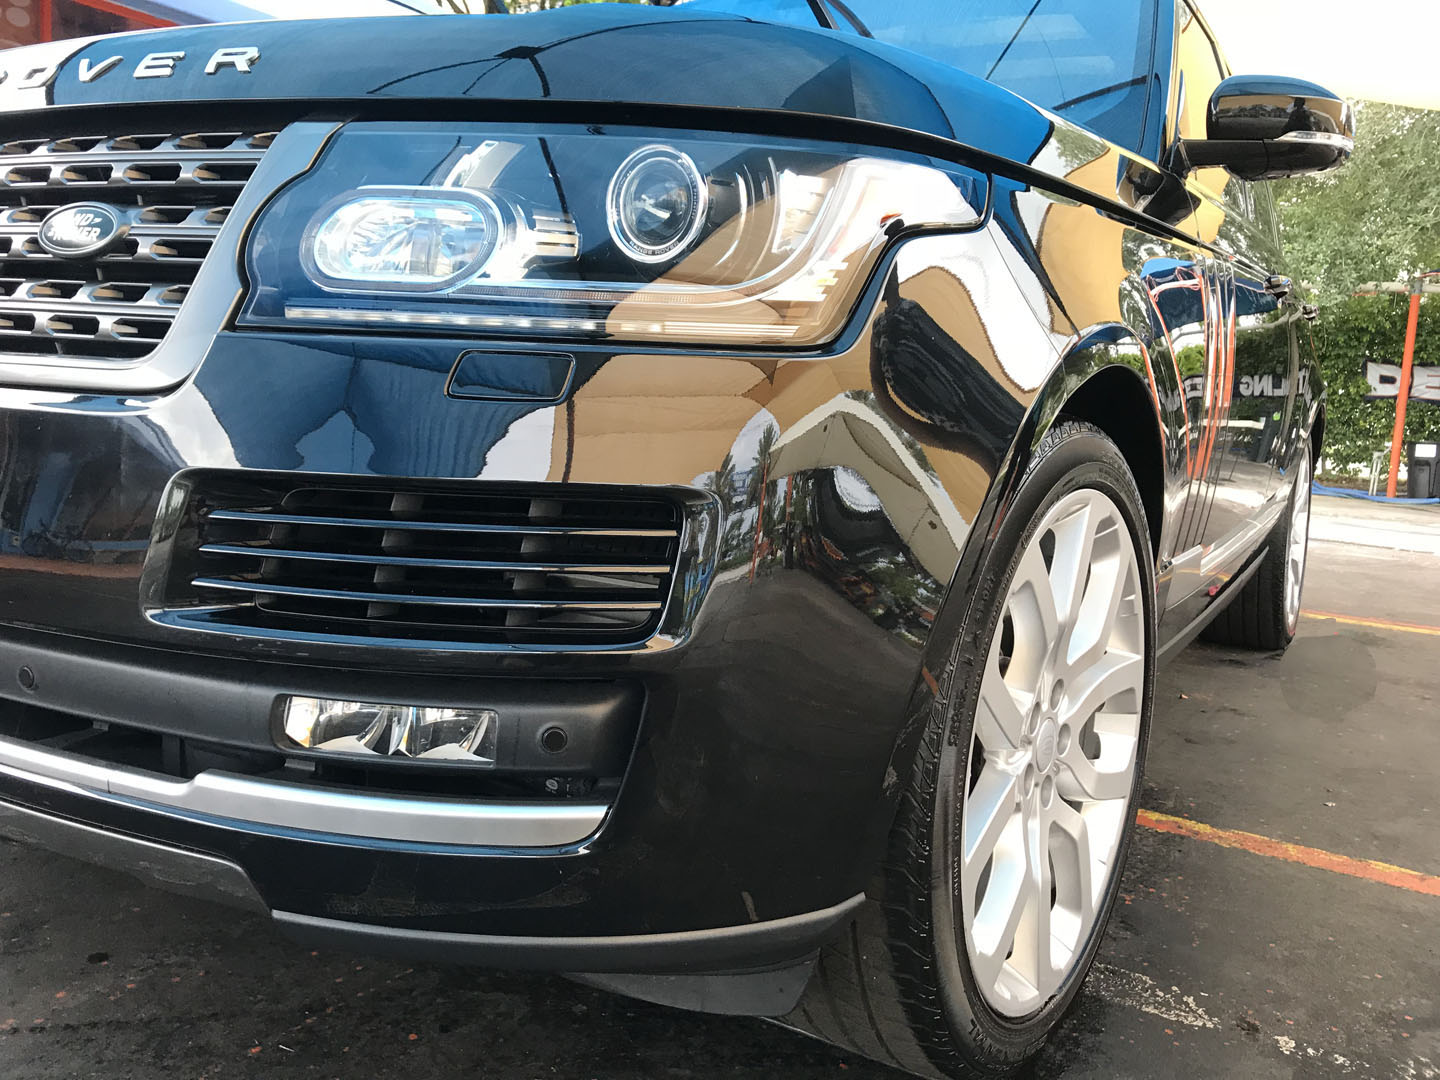 Best car detailing offer in Miami